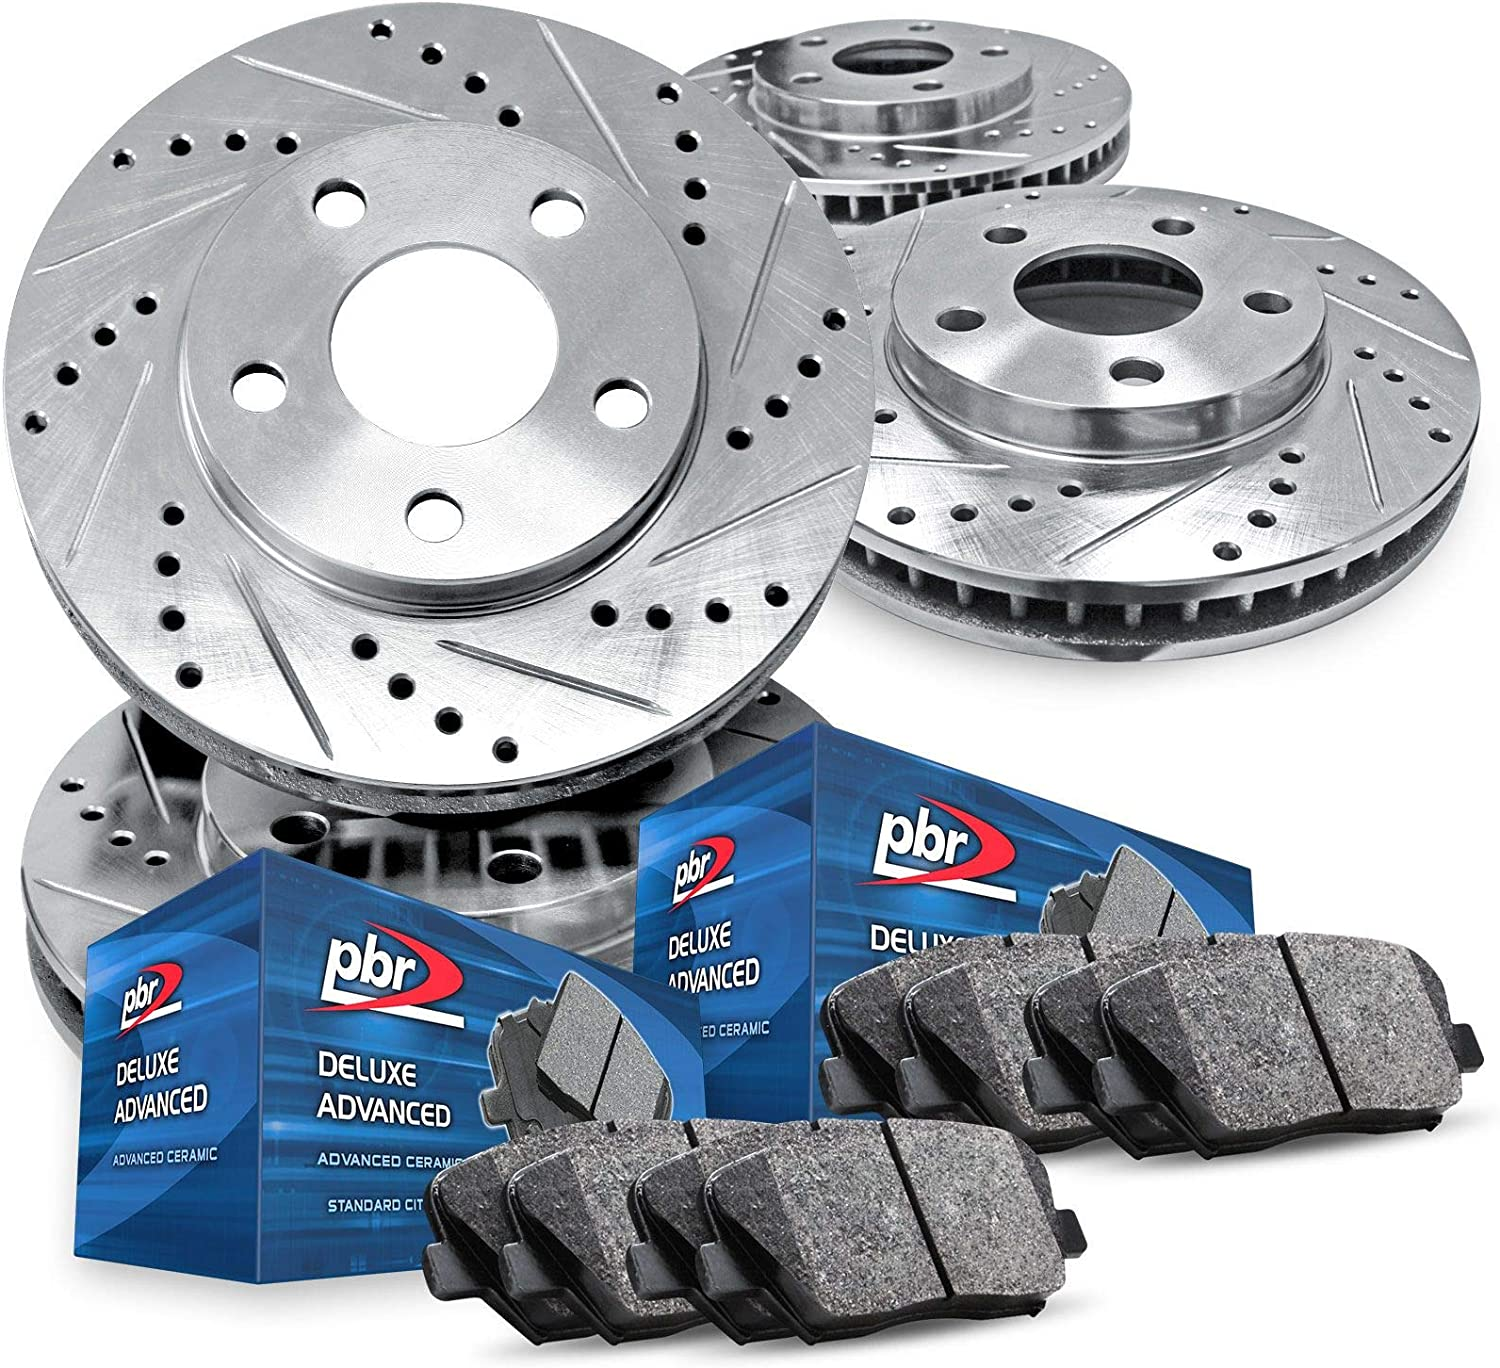 Full Kit PBR AXXIS Silver Drill Rotors + A クリアランスsale 全国どこでも送料無料 期間限定 Slot Deluxe Brake